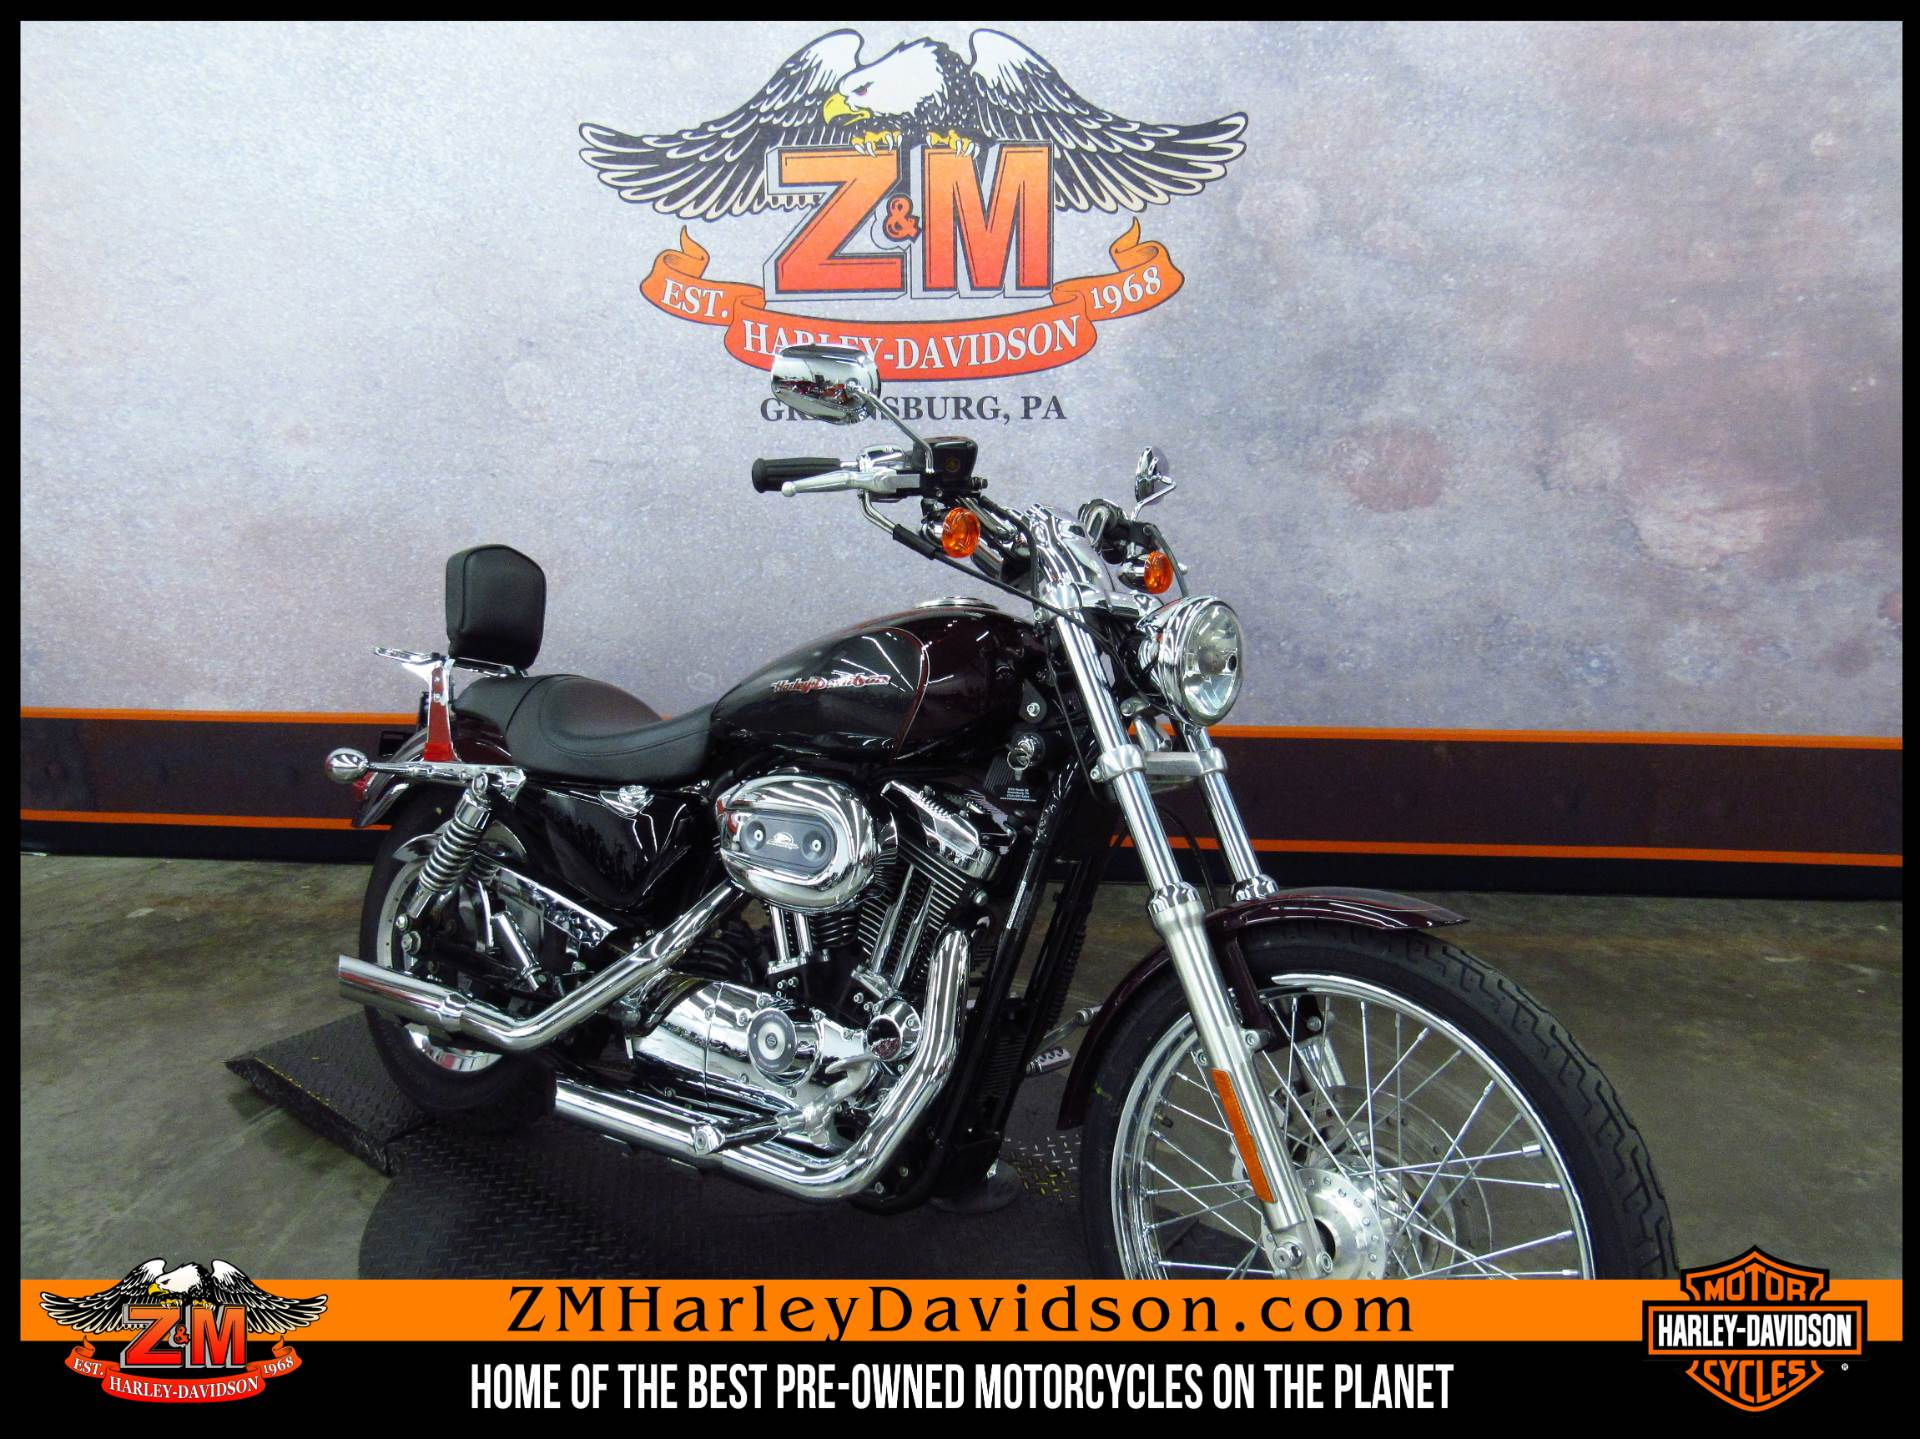 2005 Harley-Davidson Sportster® XL 1200 Custom in Greensburg, Pennsylvania - Photo 2